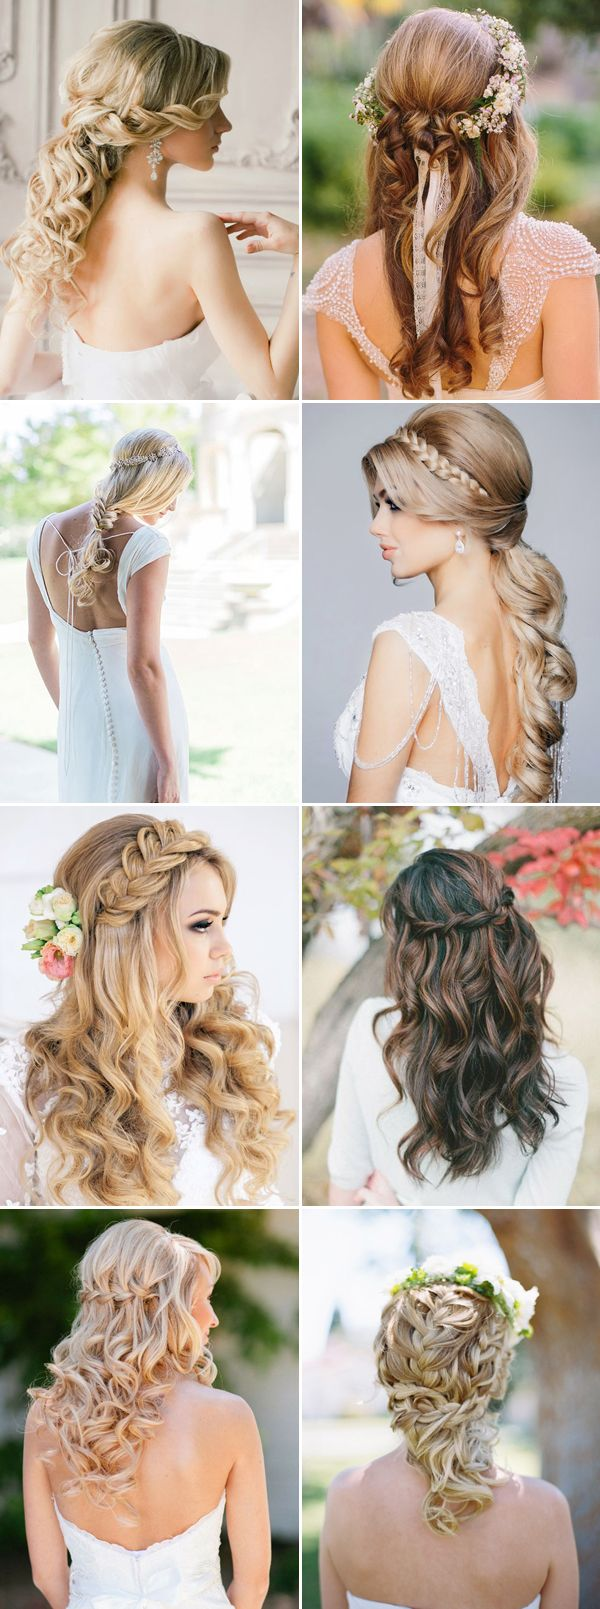 16 Gorgeous Half Up, Half Down Hairstyles for Brides | Hair ...